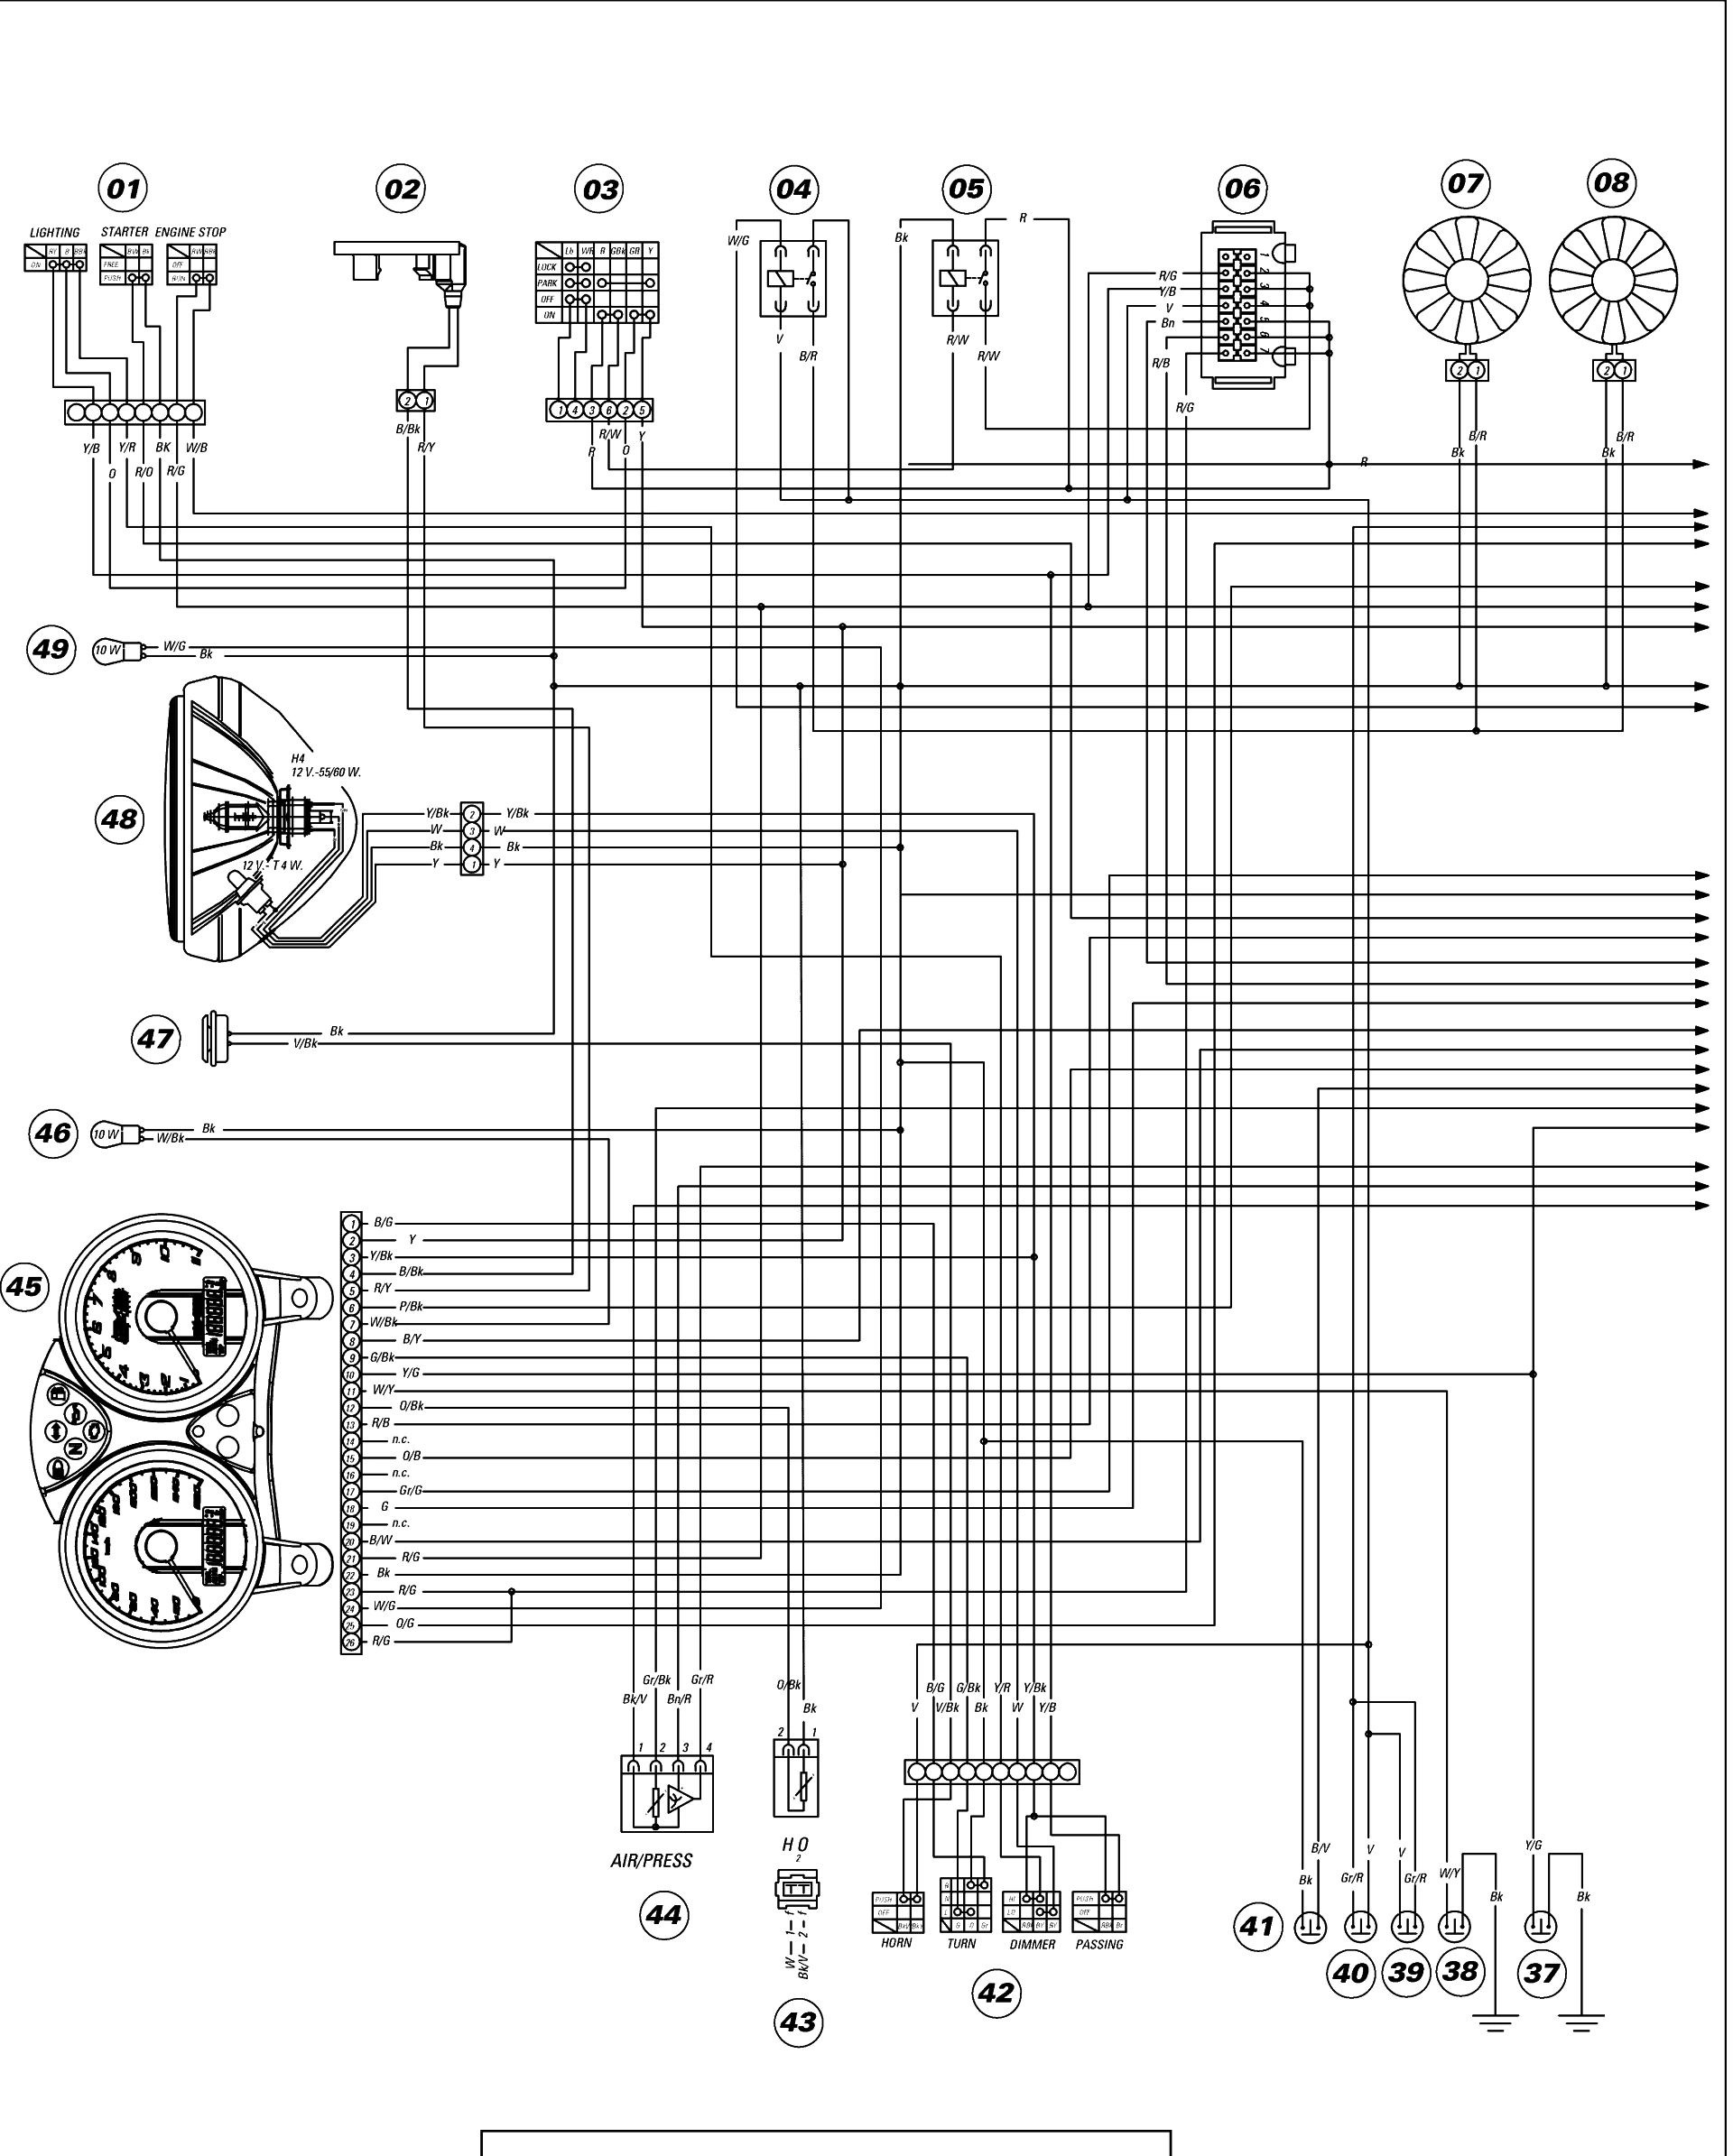 hight resolution of ducati s4rs wiring diagram wiring library diagram a4 kasea wiring diagram ducati s4r wiring diagram